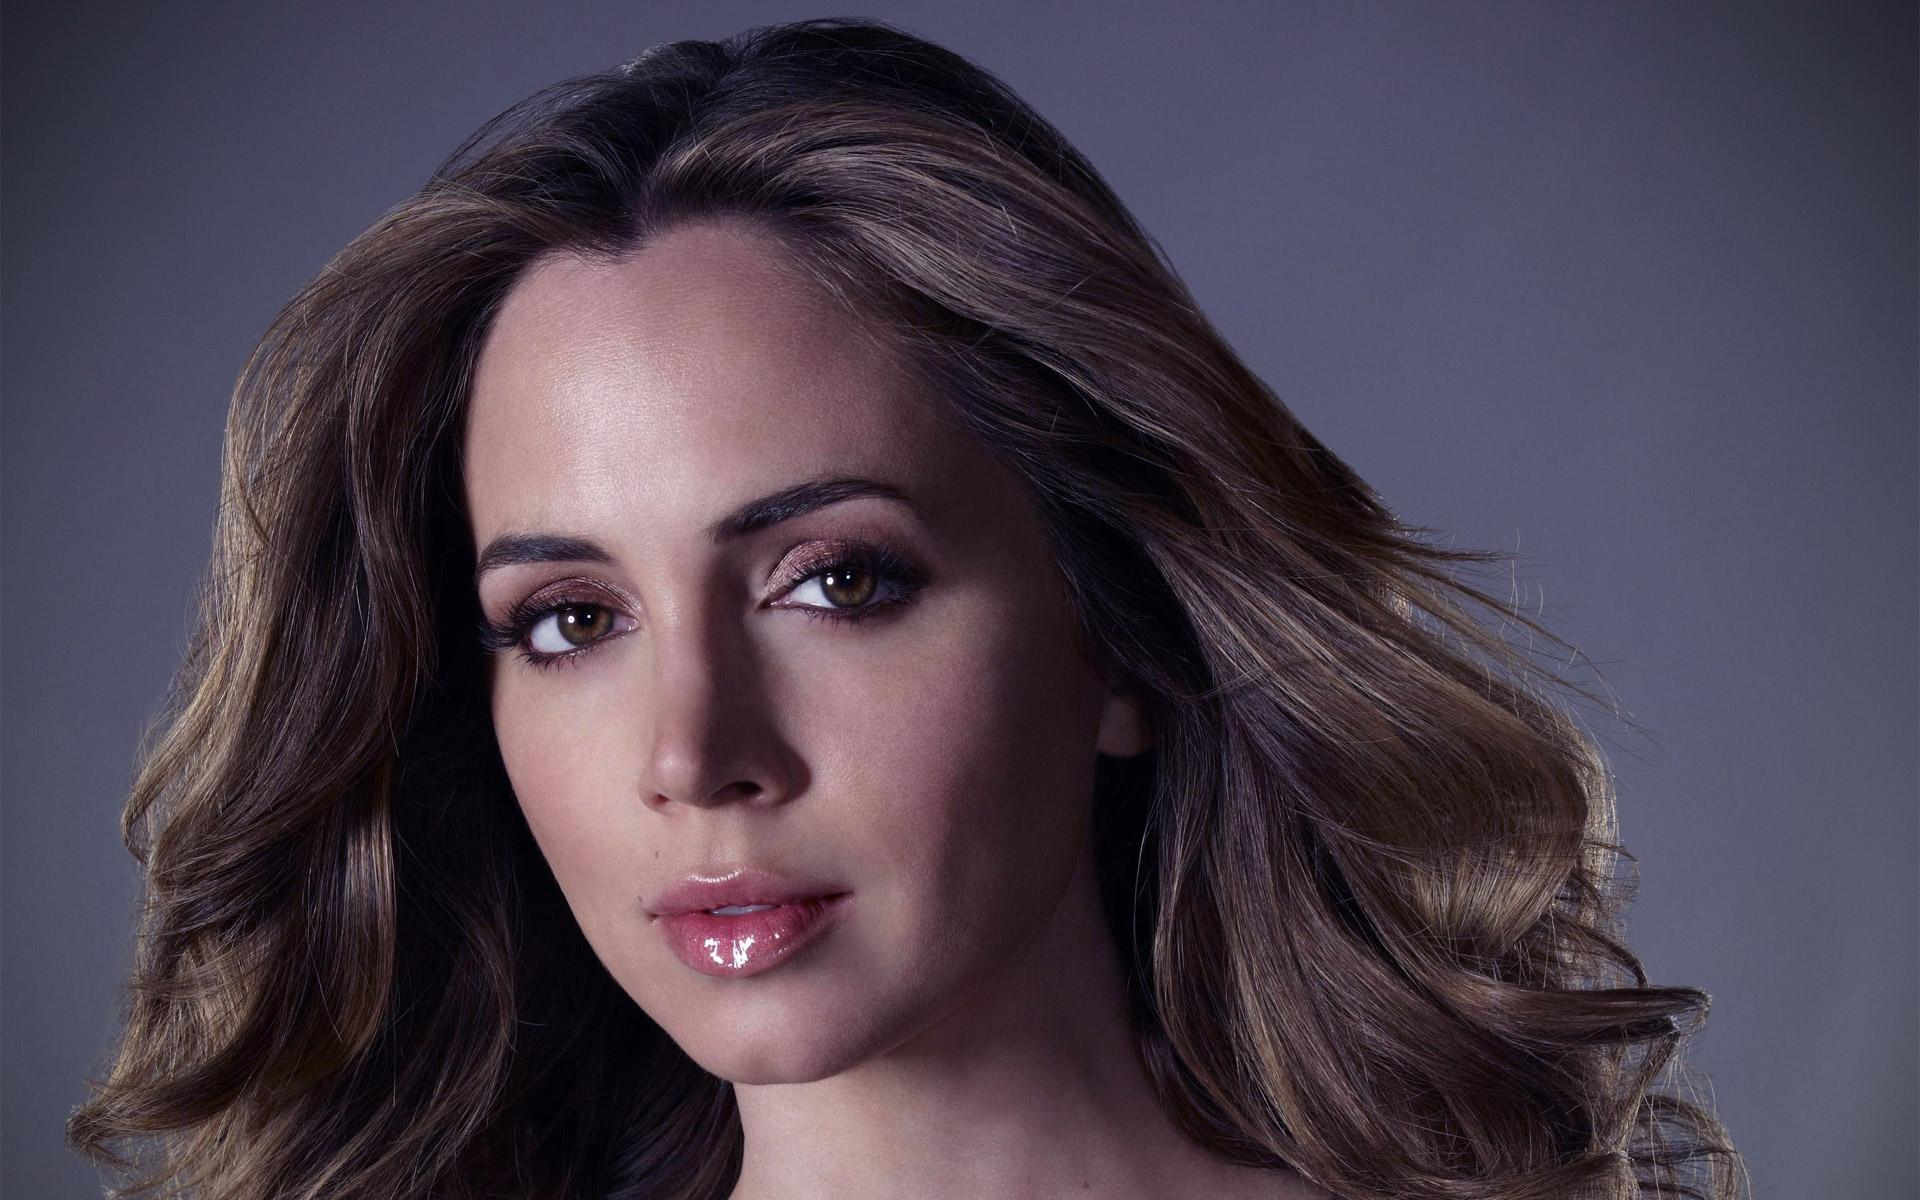 ... Eliza Dushku Portrait HD Walpapers.